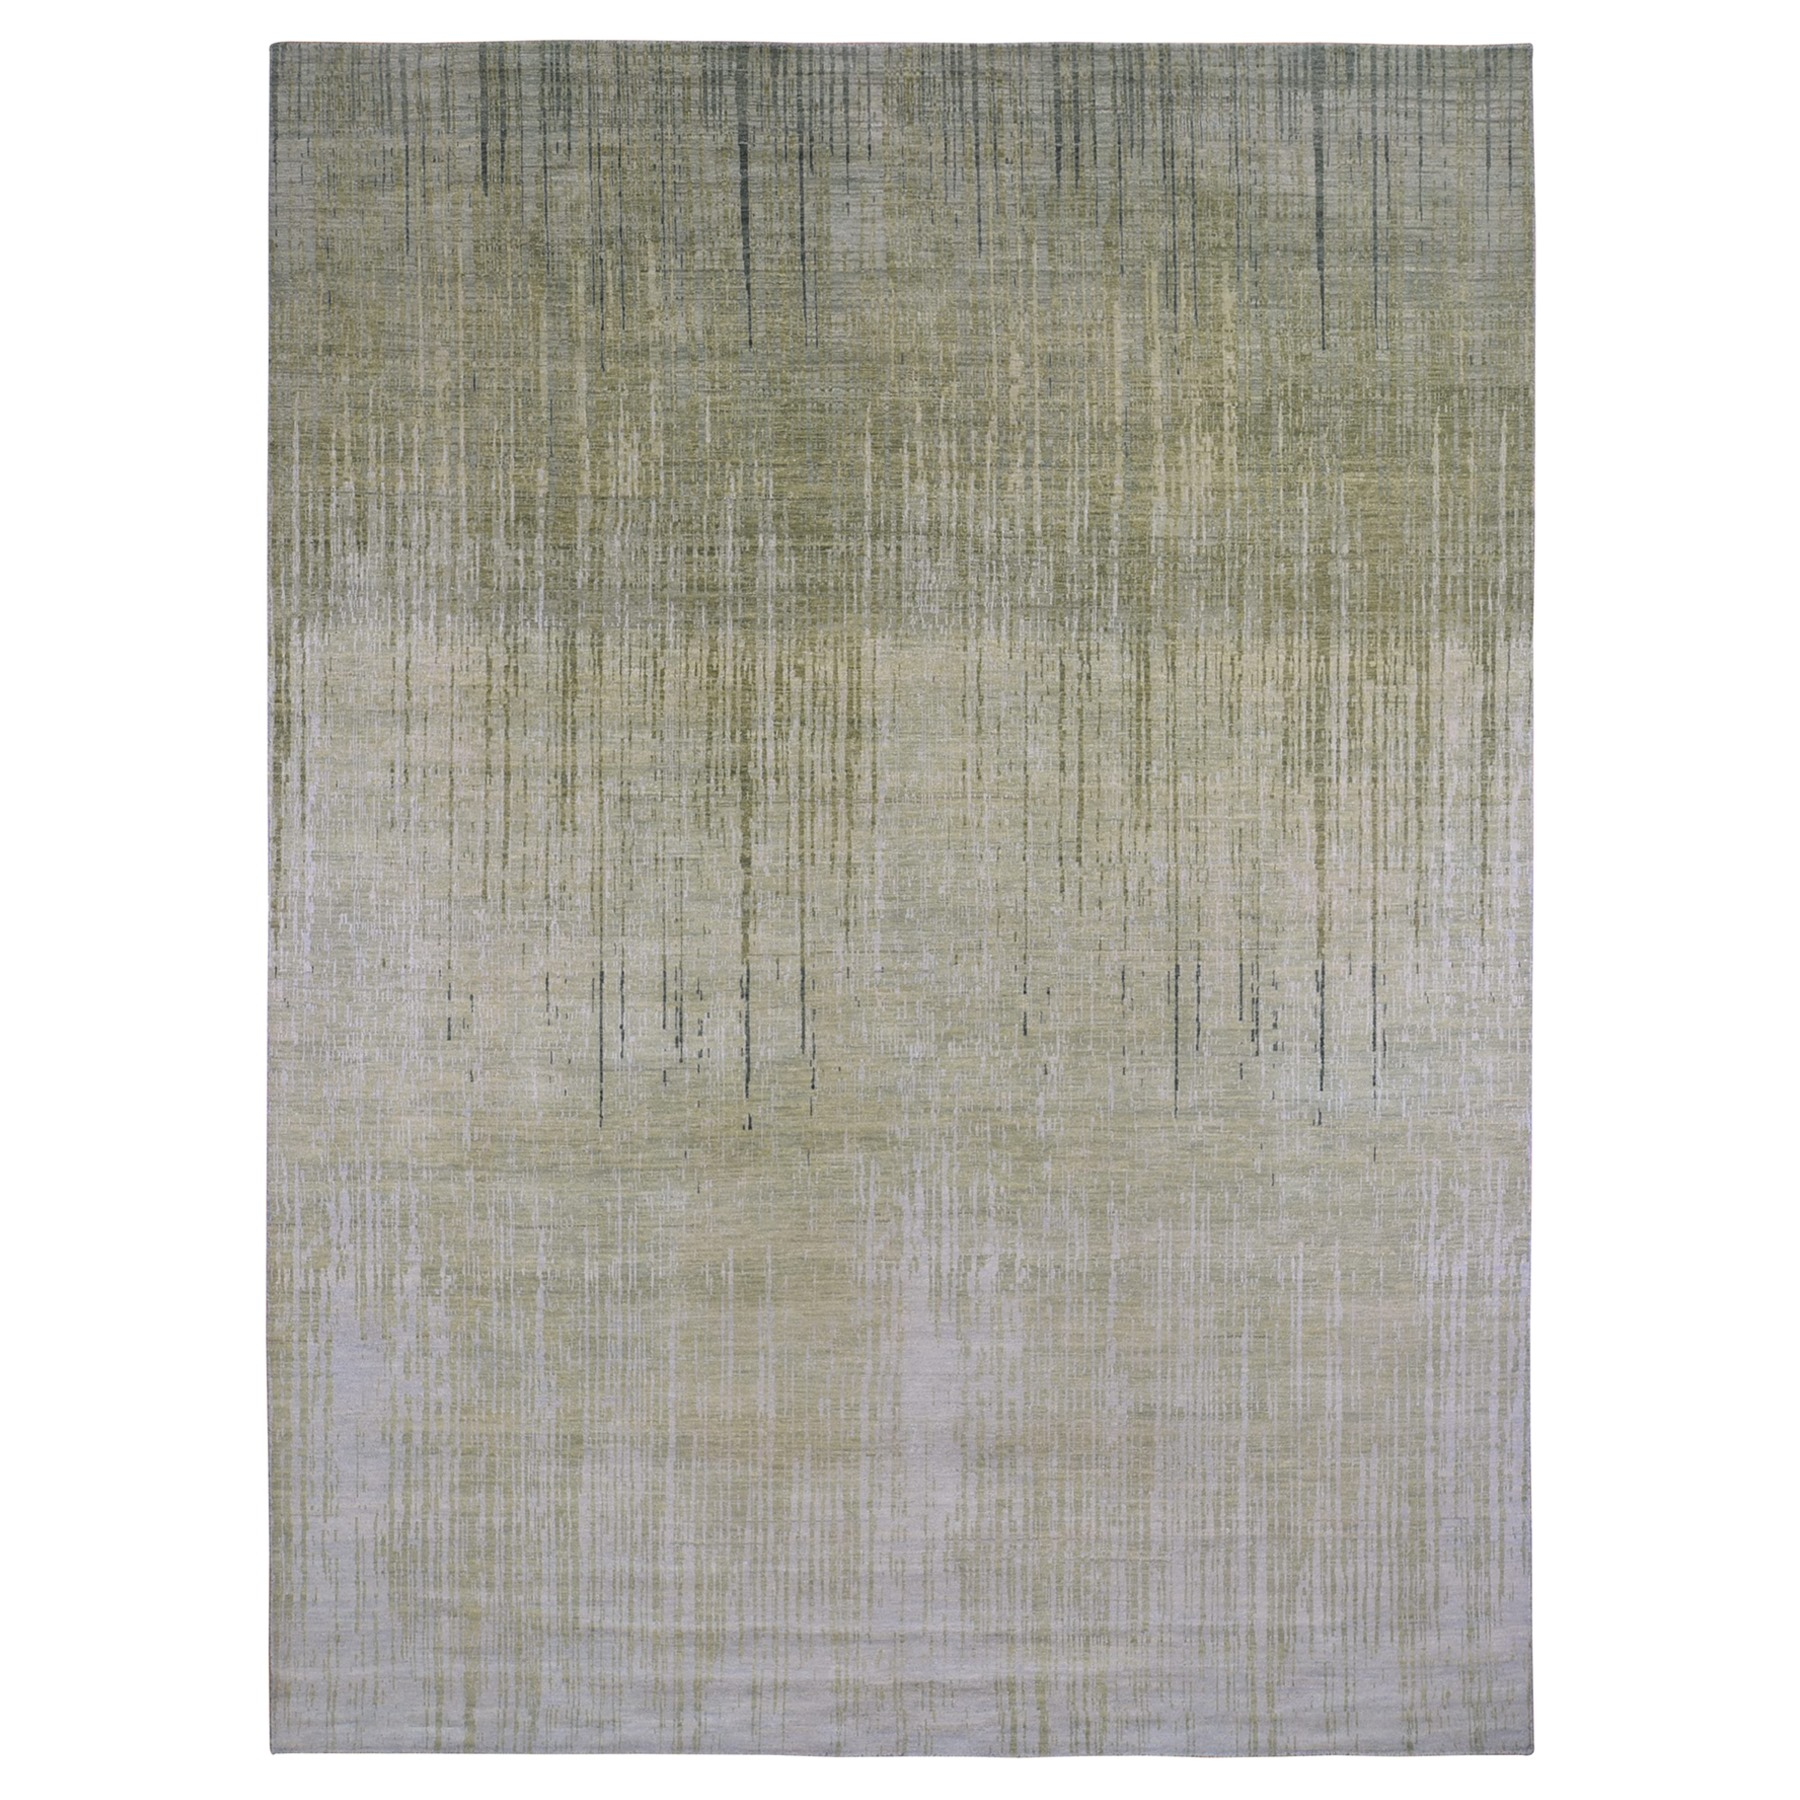 Modern & Contemporary Rugs LUV598869